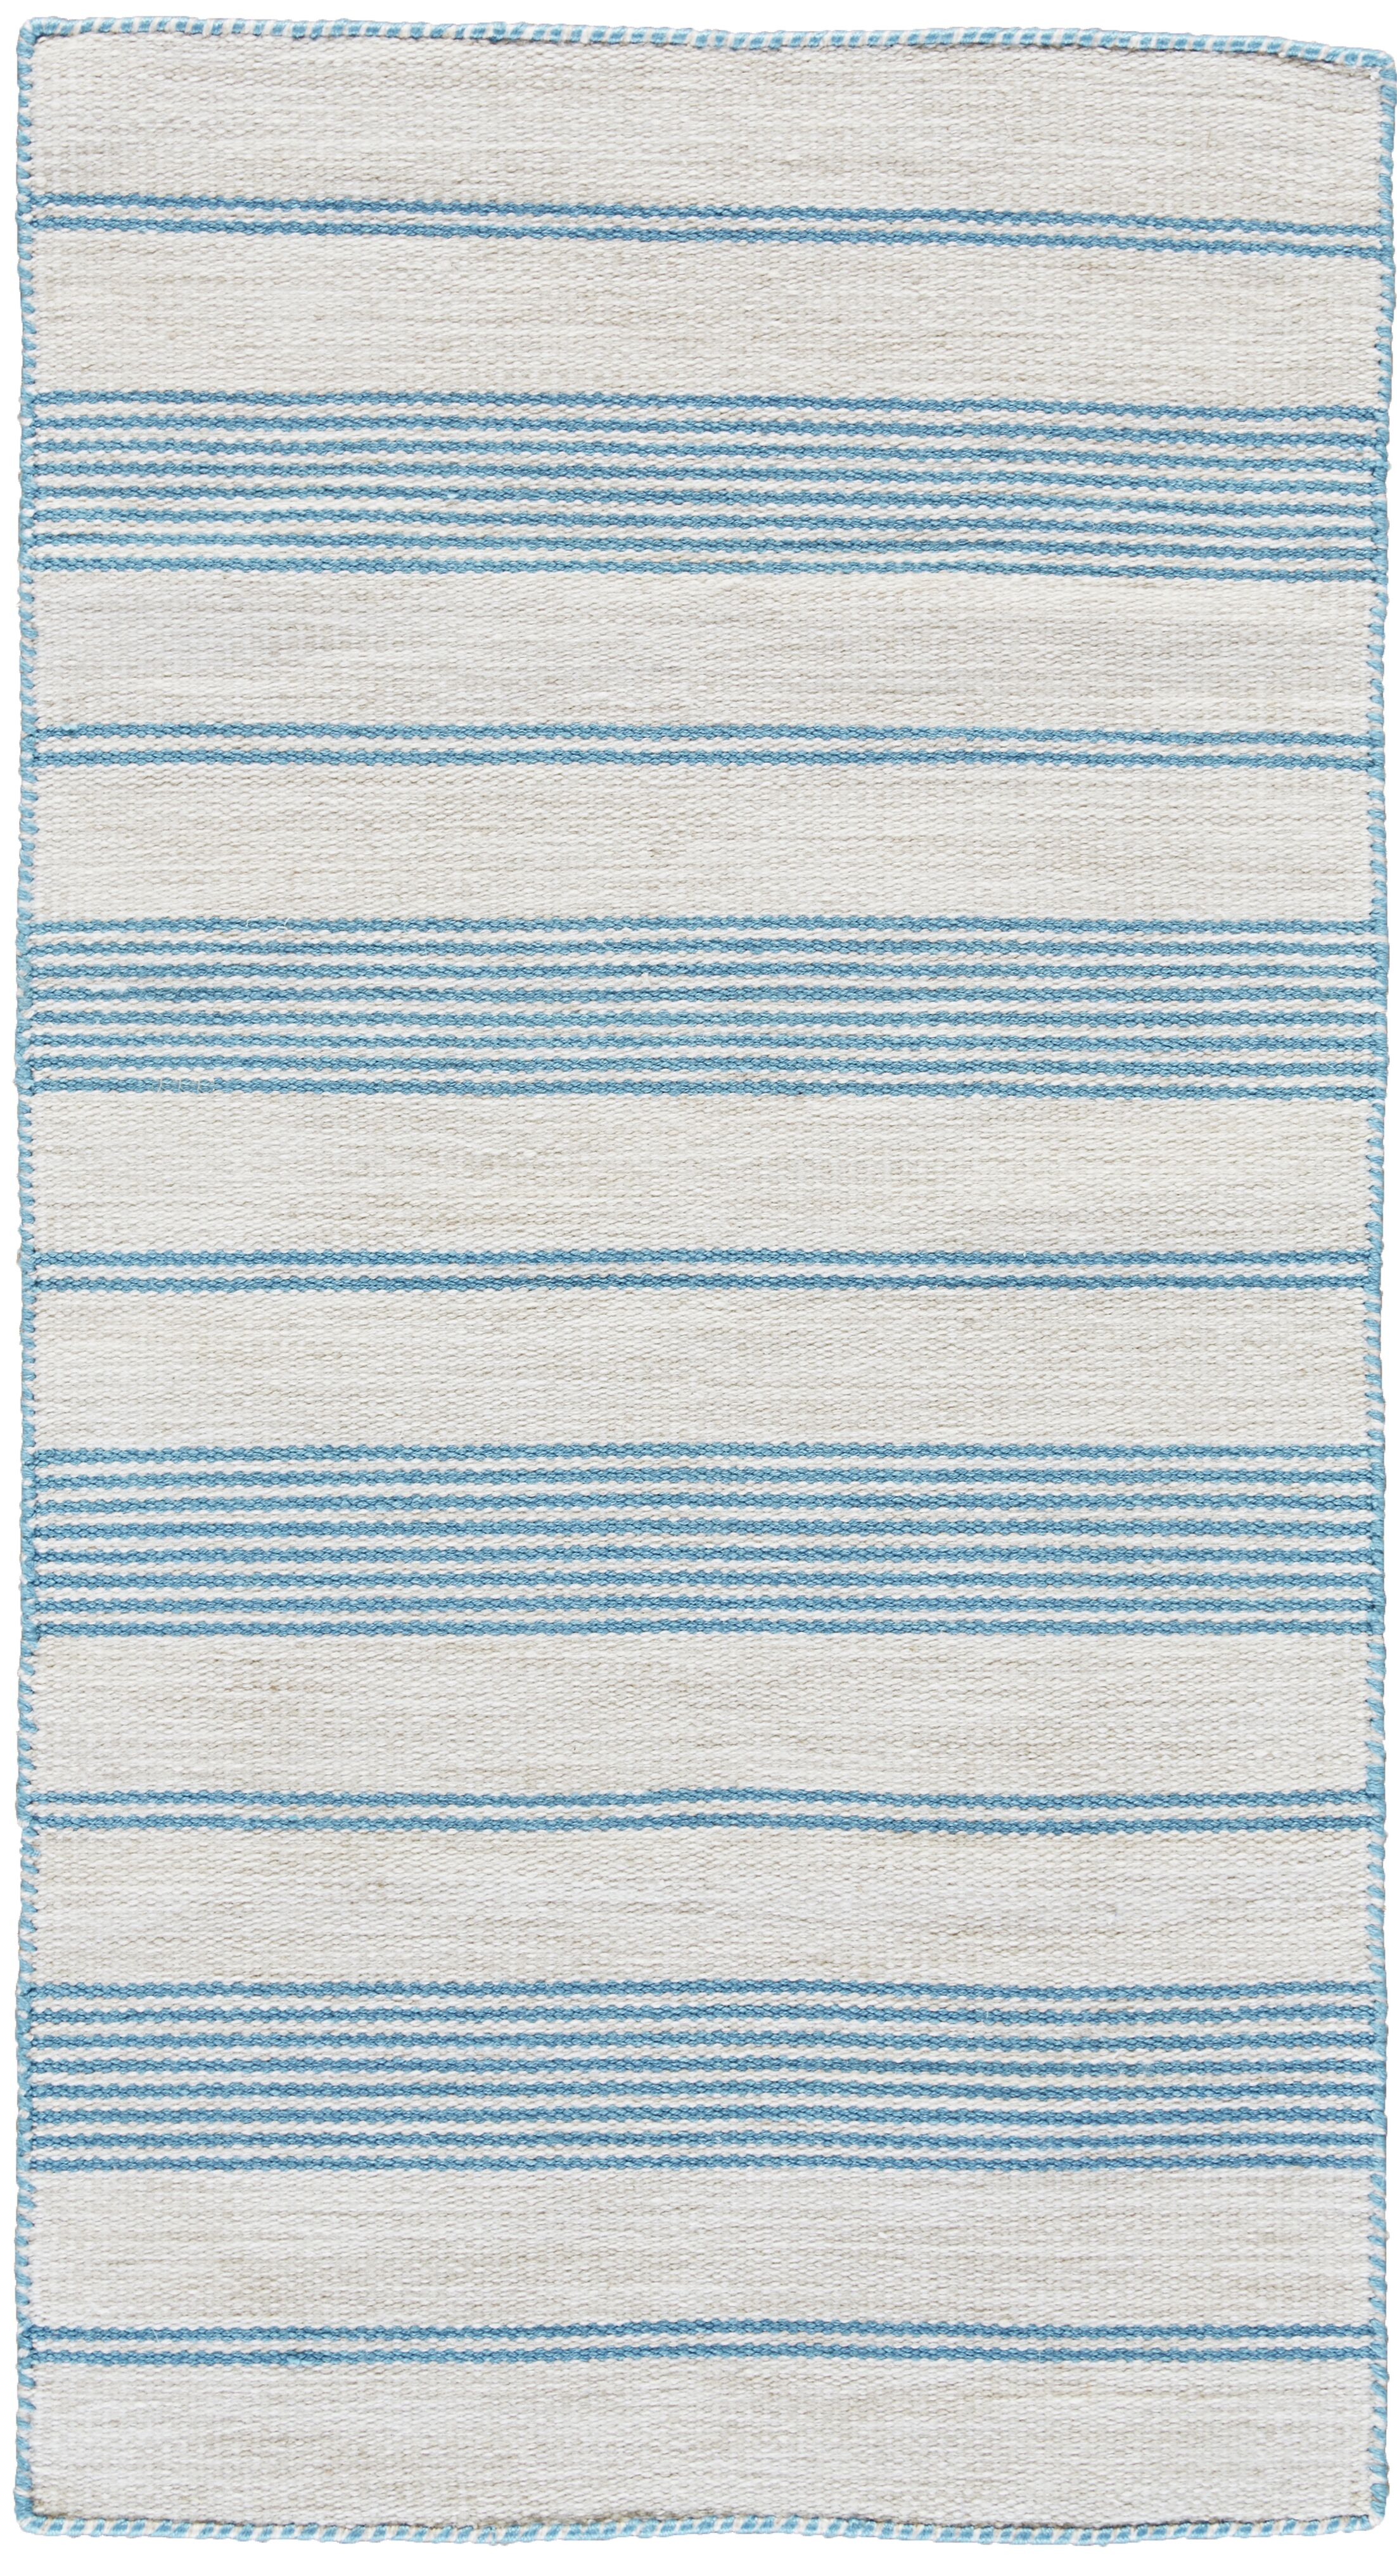 Alicea Hand-Woven Turqouise Area Rug Rug Size: Rectangle 8' x 11'